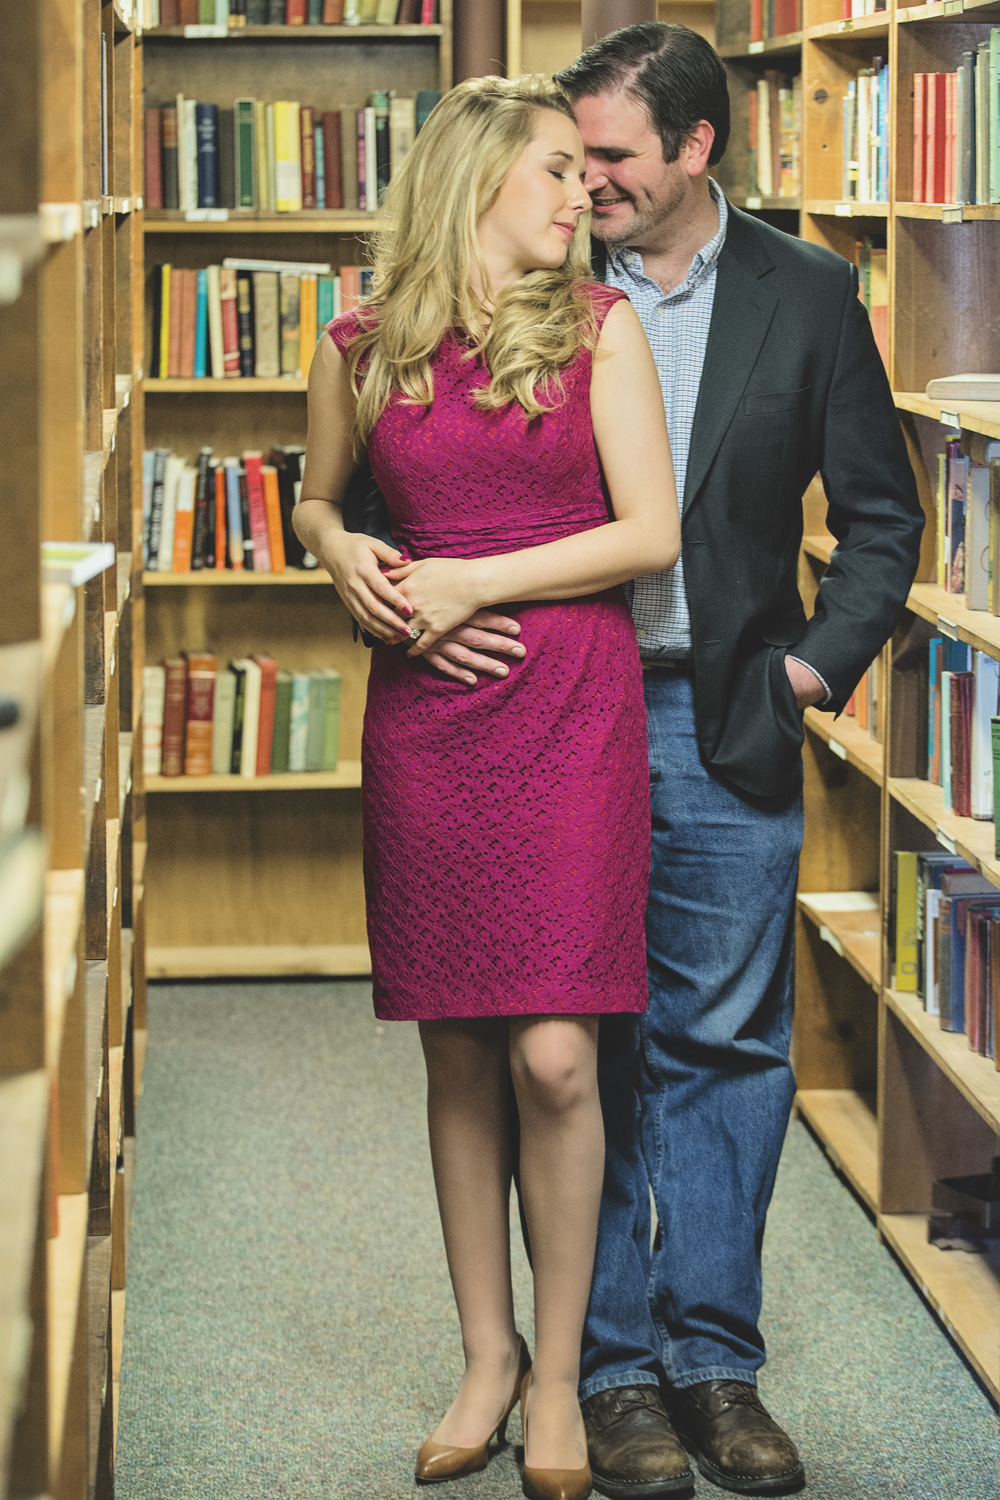 bookstore_fairytale_downtown_engagement_session_lynchburg_va010.jpg